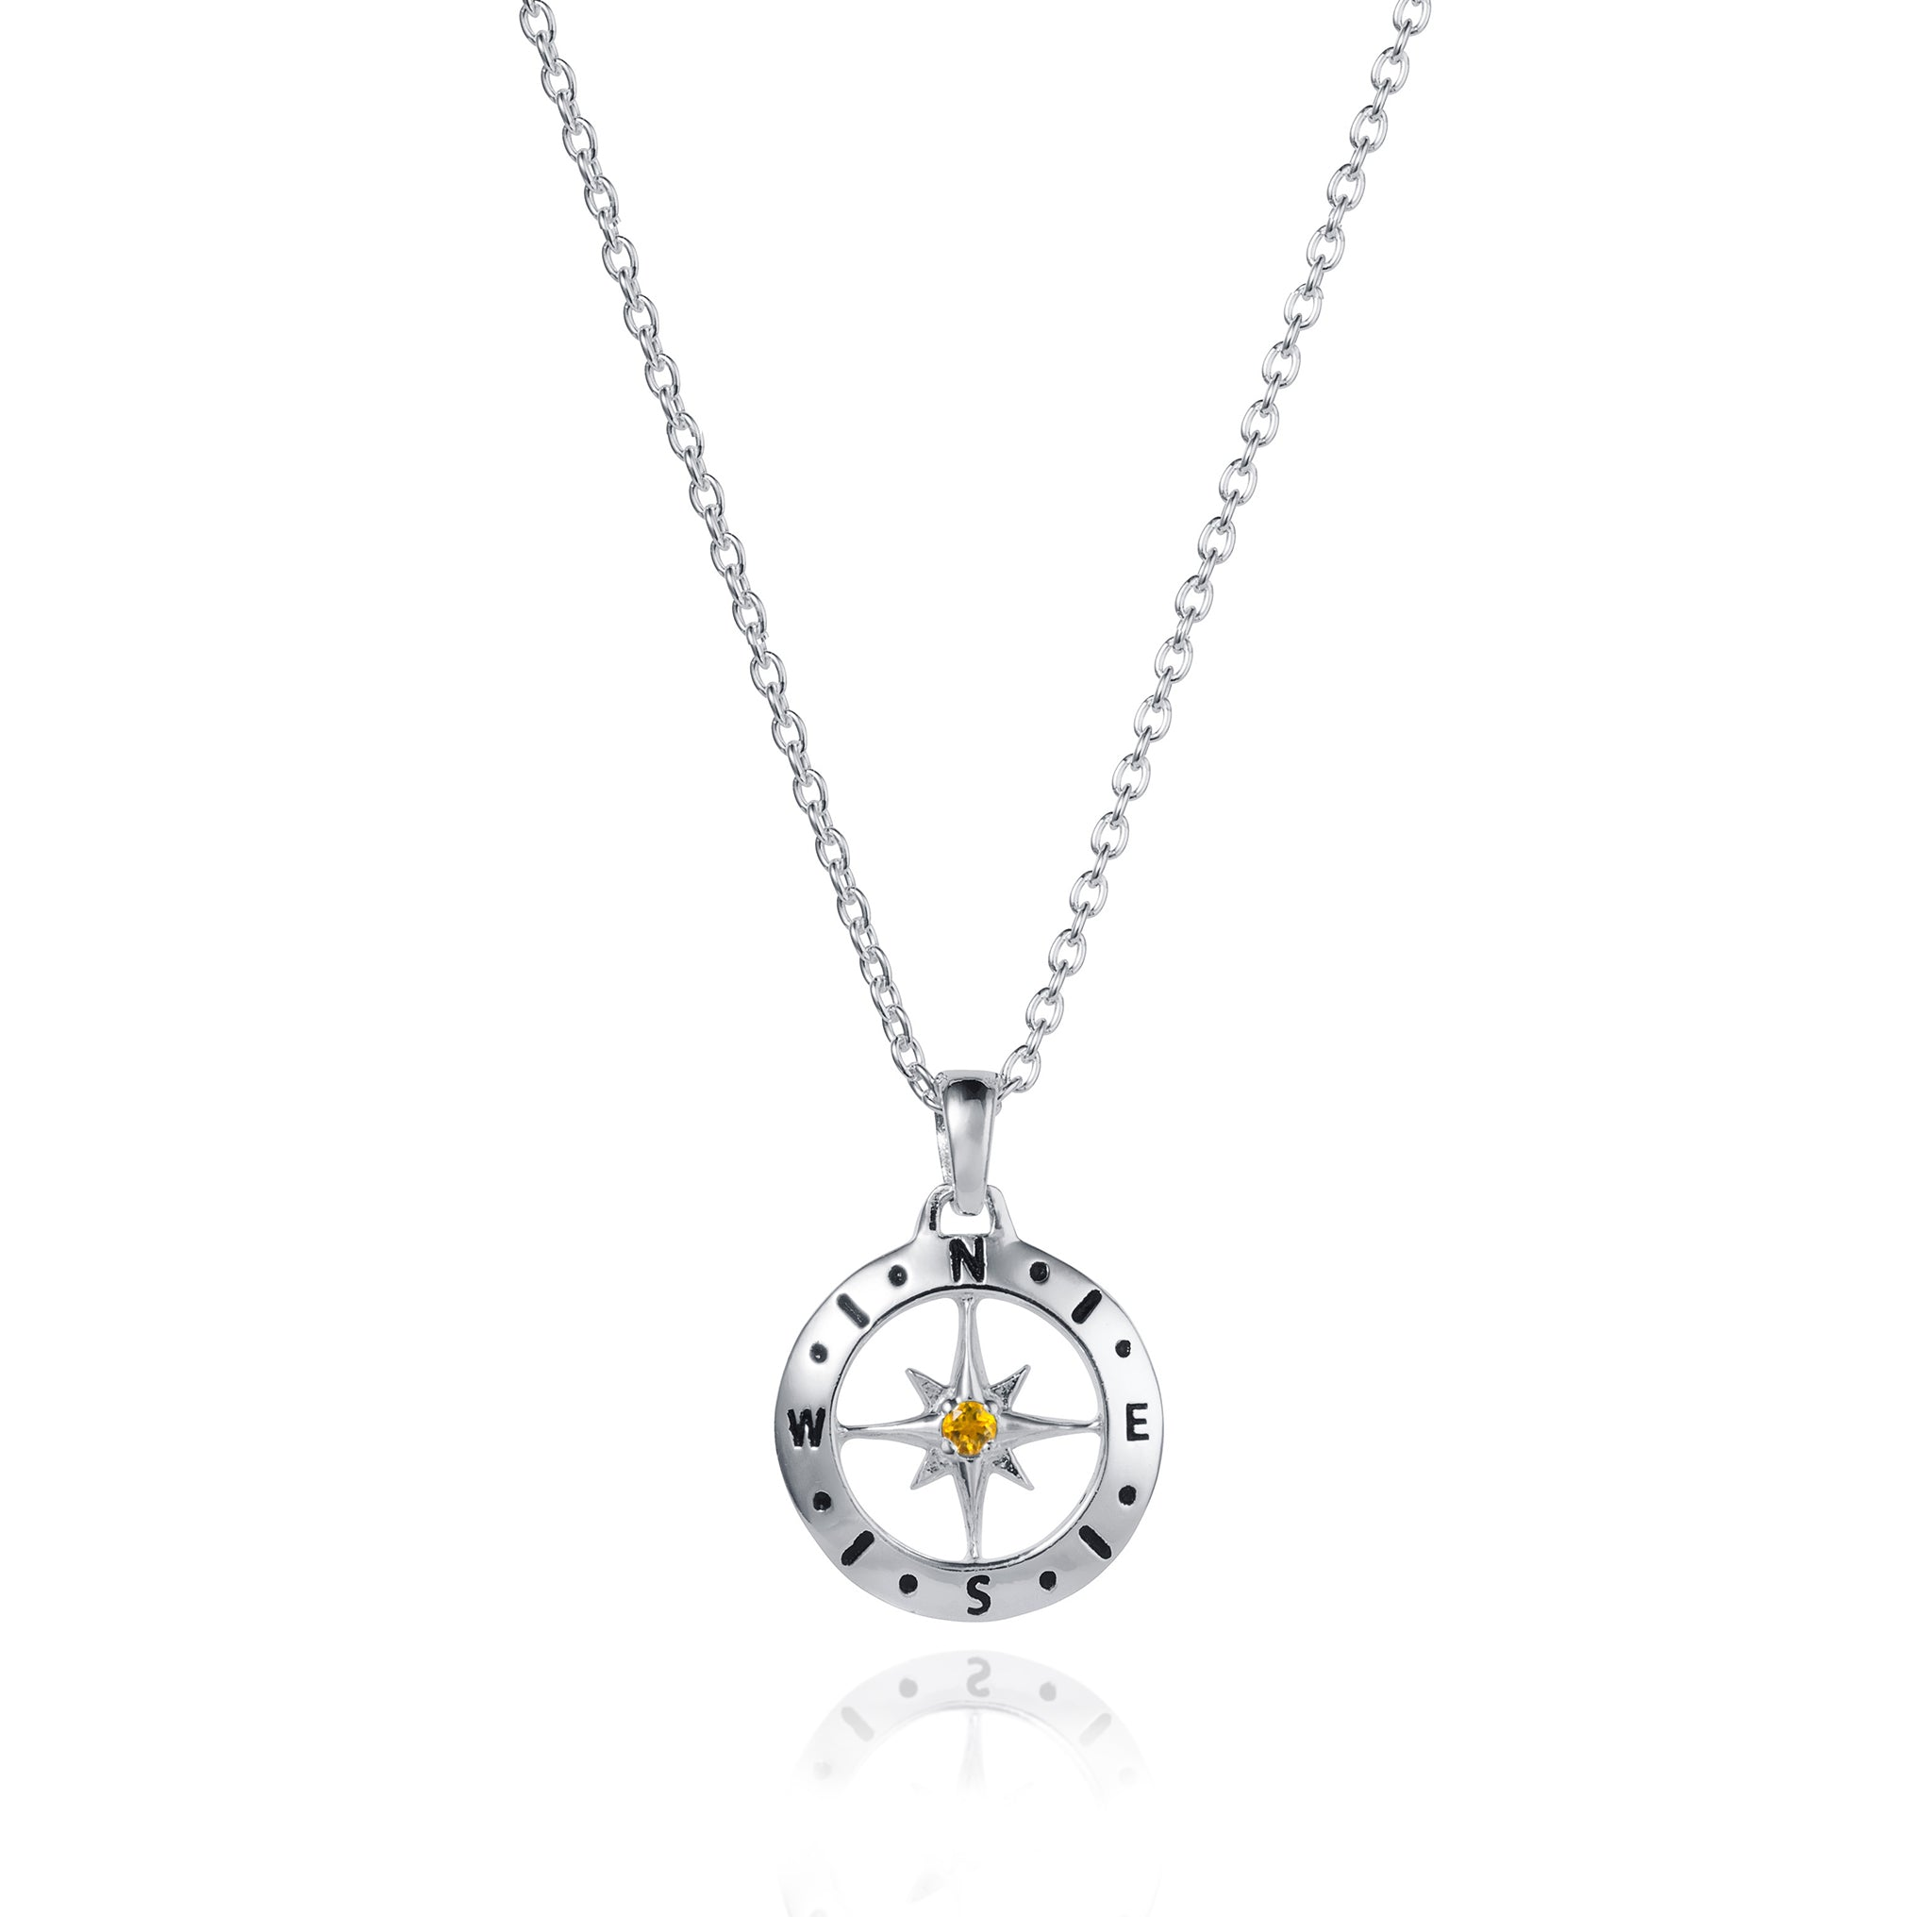 Silver Compass Necklace with November Birthstone